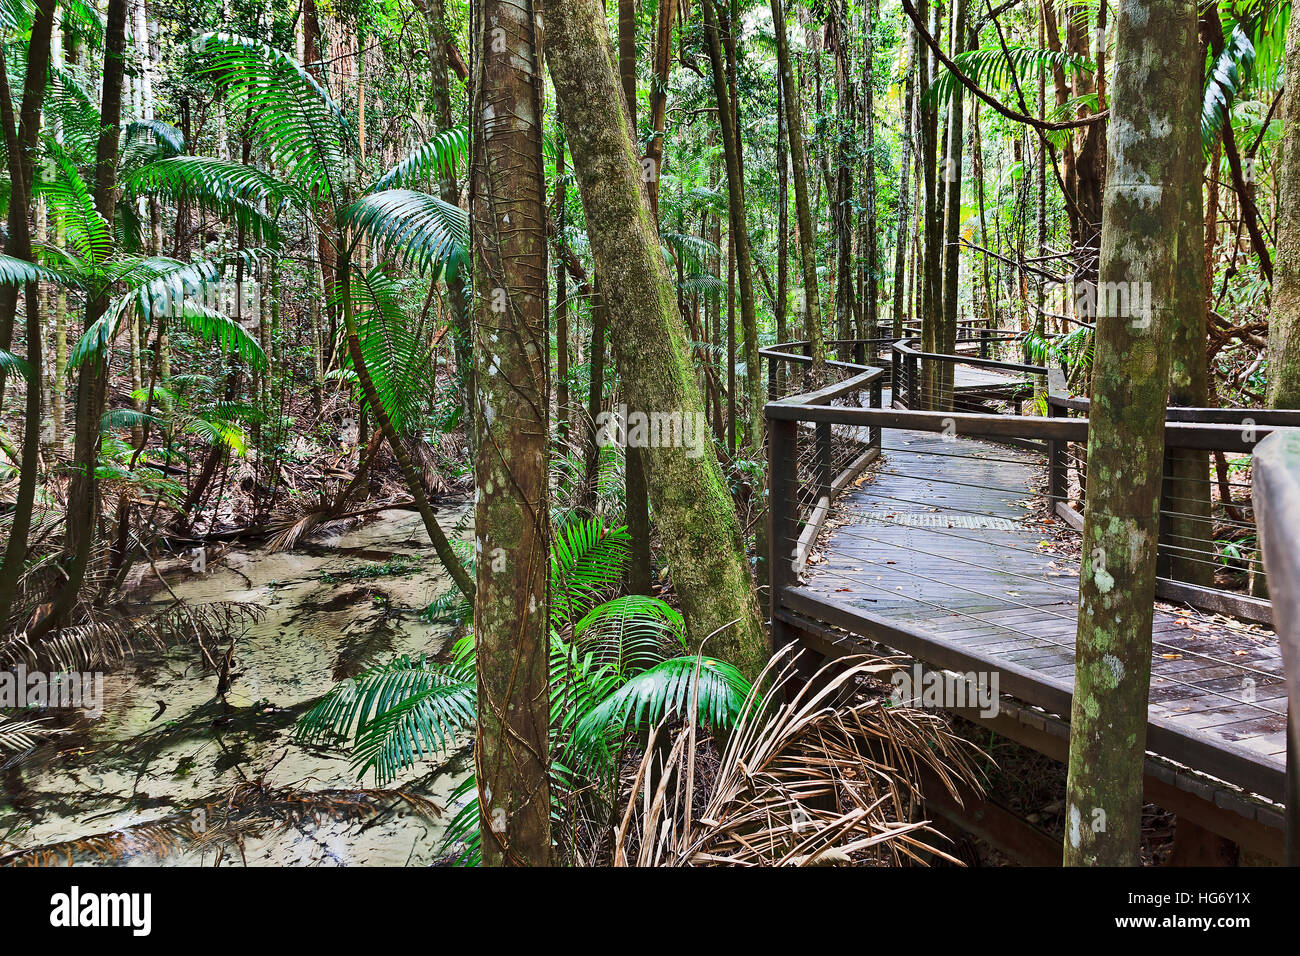 Fraser island rain-forest around Central station along shallow freshwater flowing creek. Timber boardwalk for tourists - Stock Image